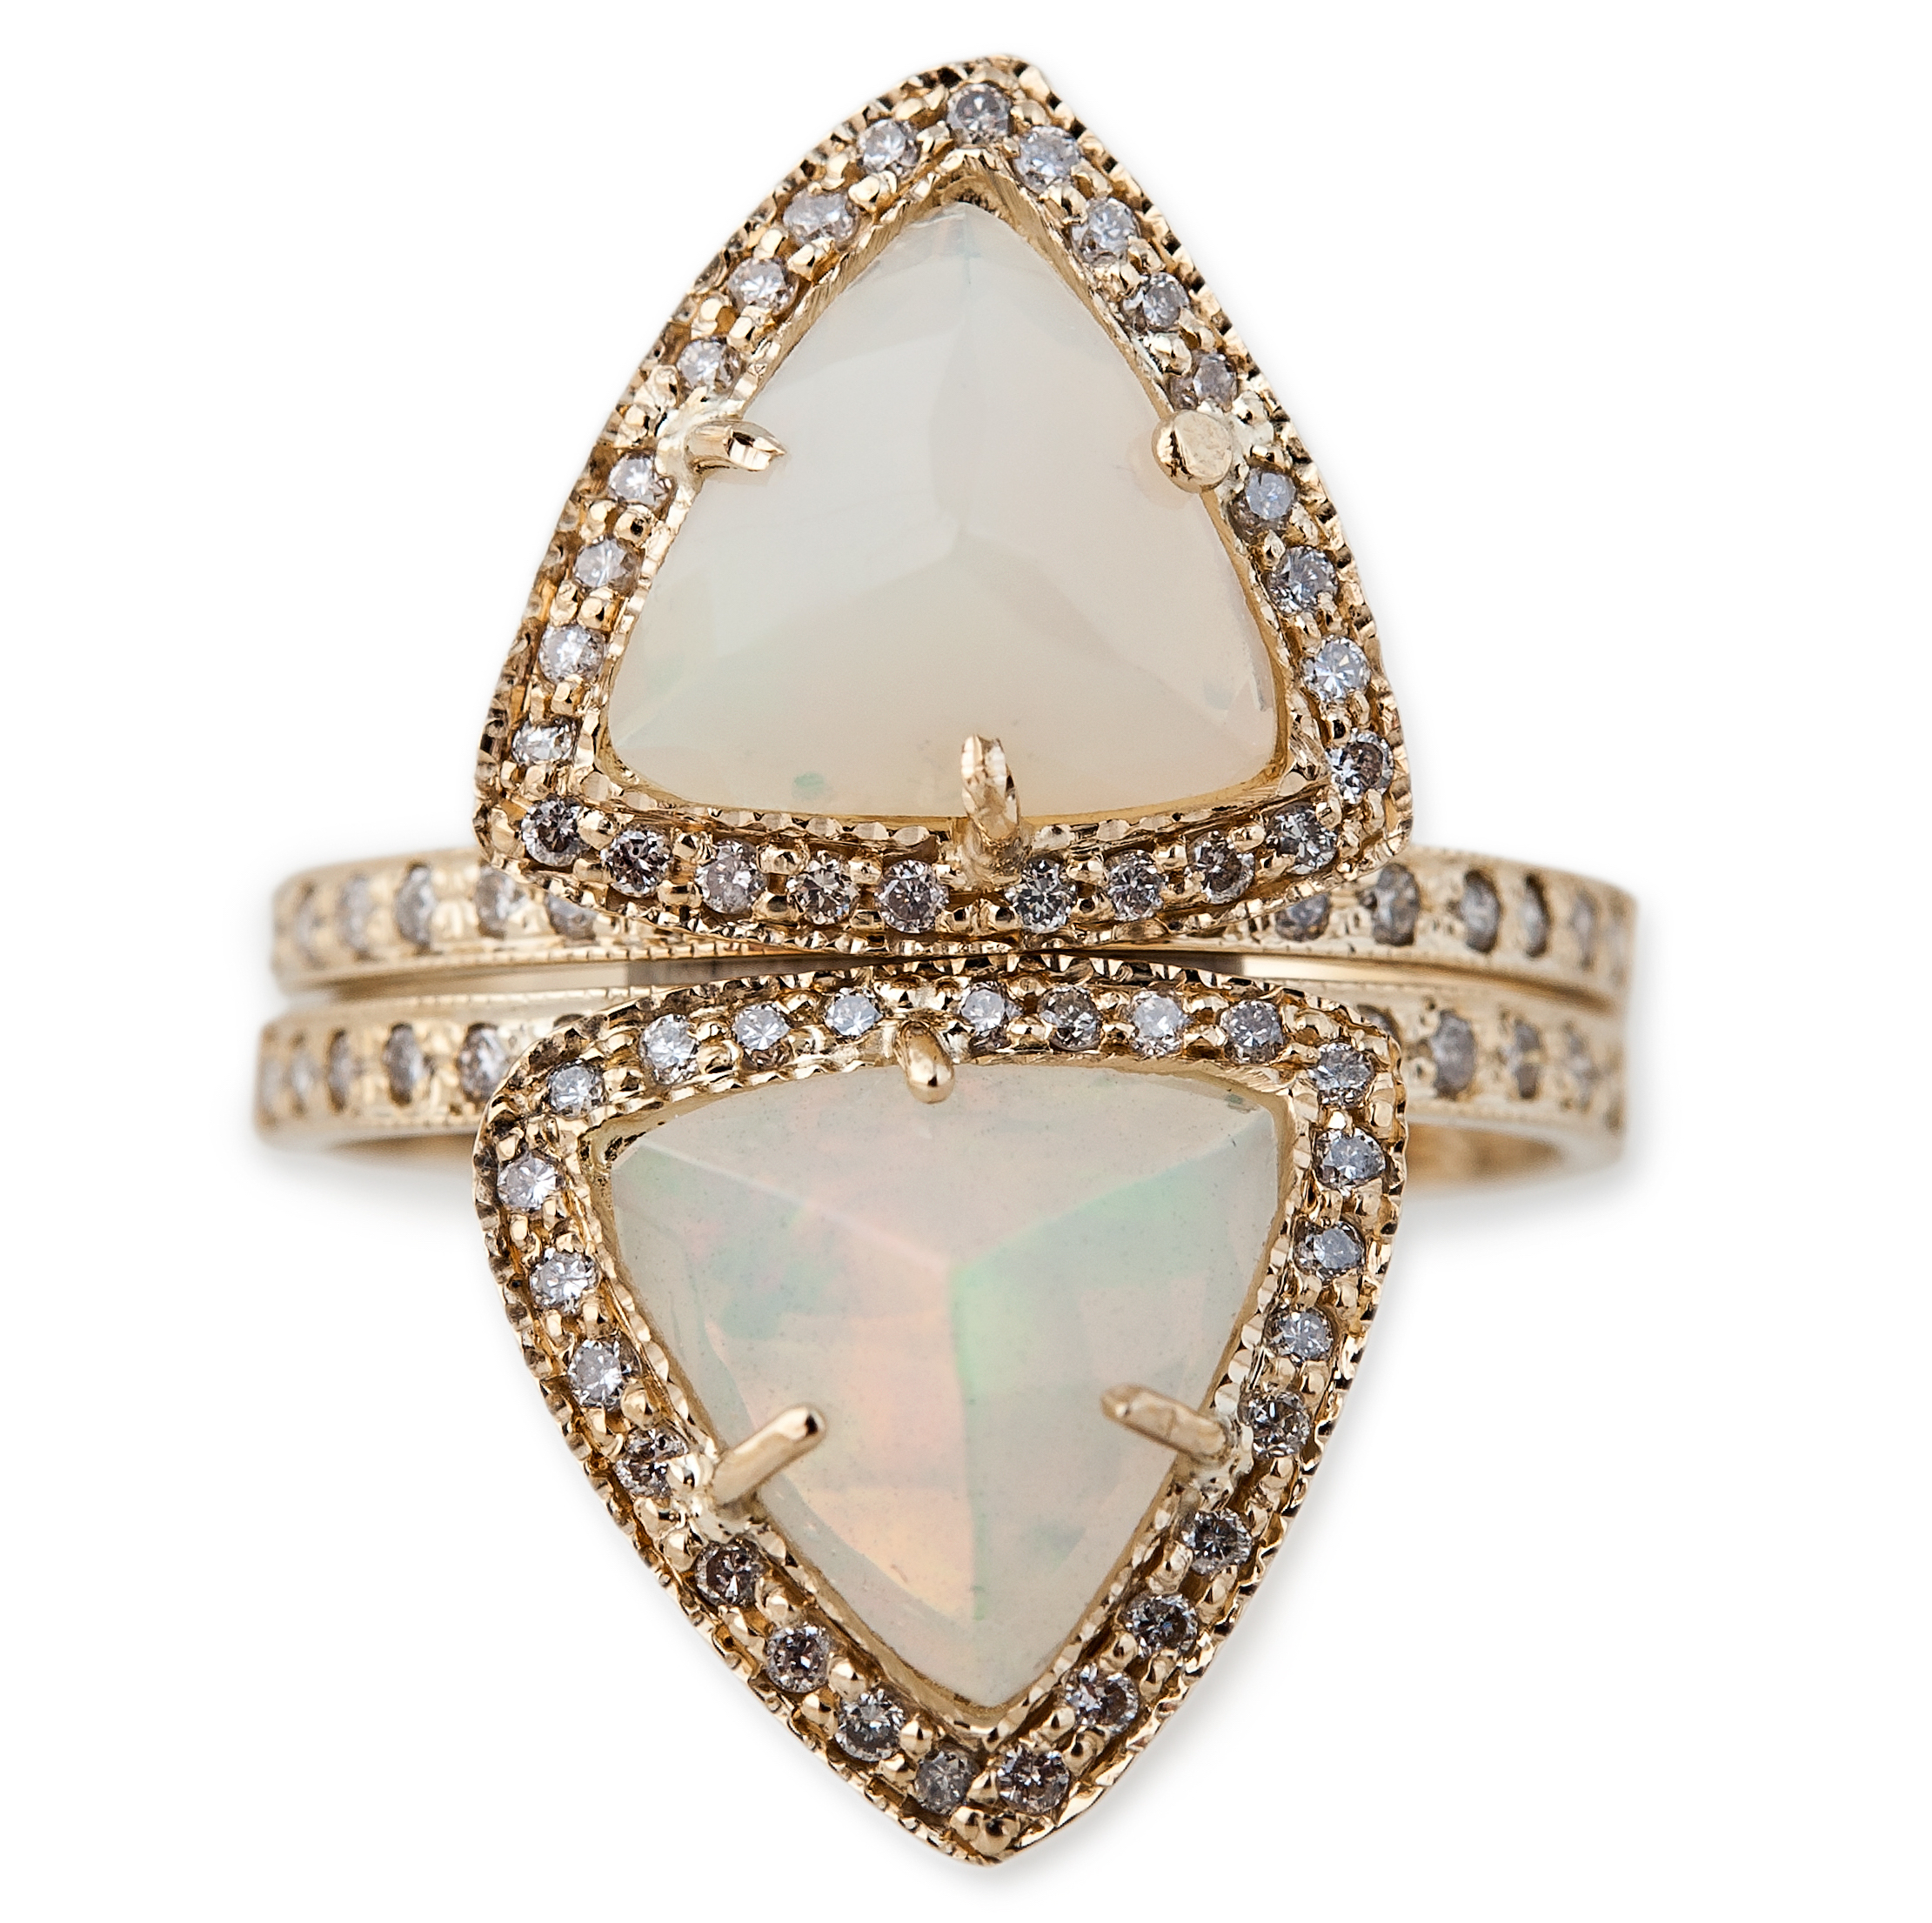 Jacquie Aiche opal pyramid stack rings | JCK On Your Market